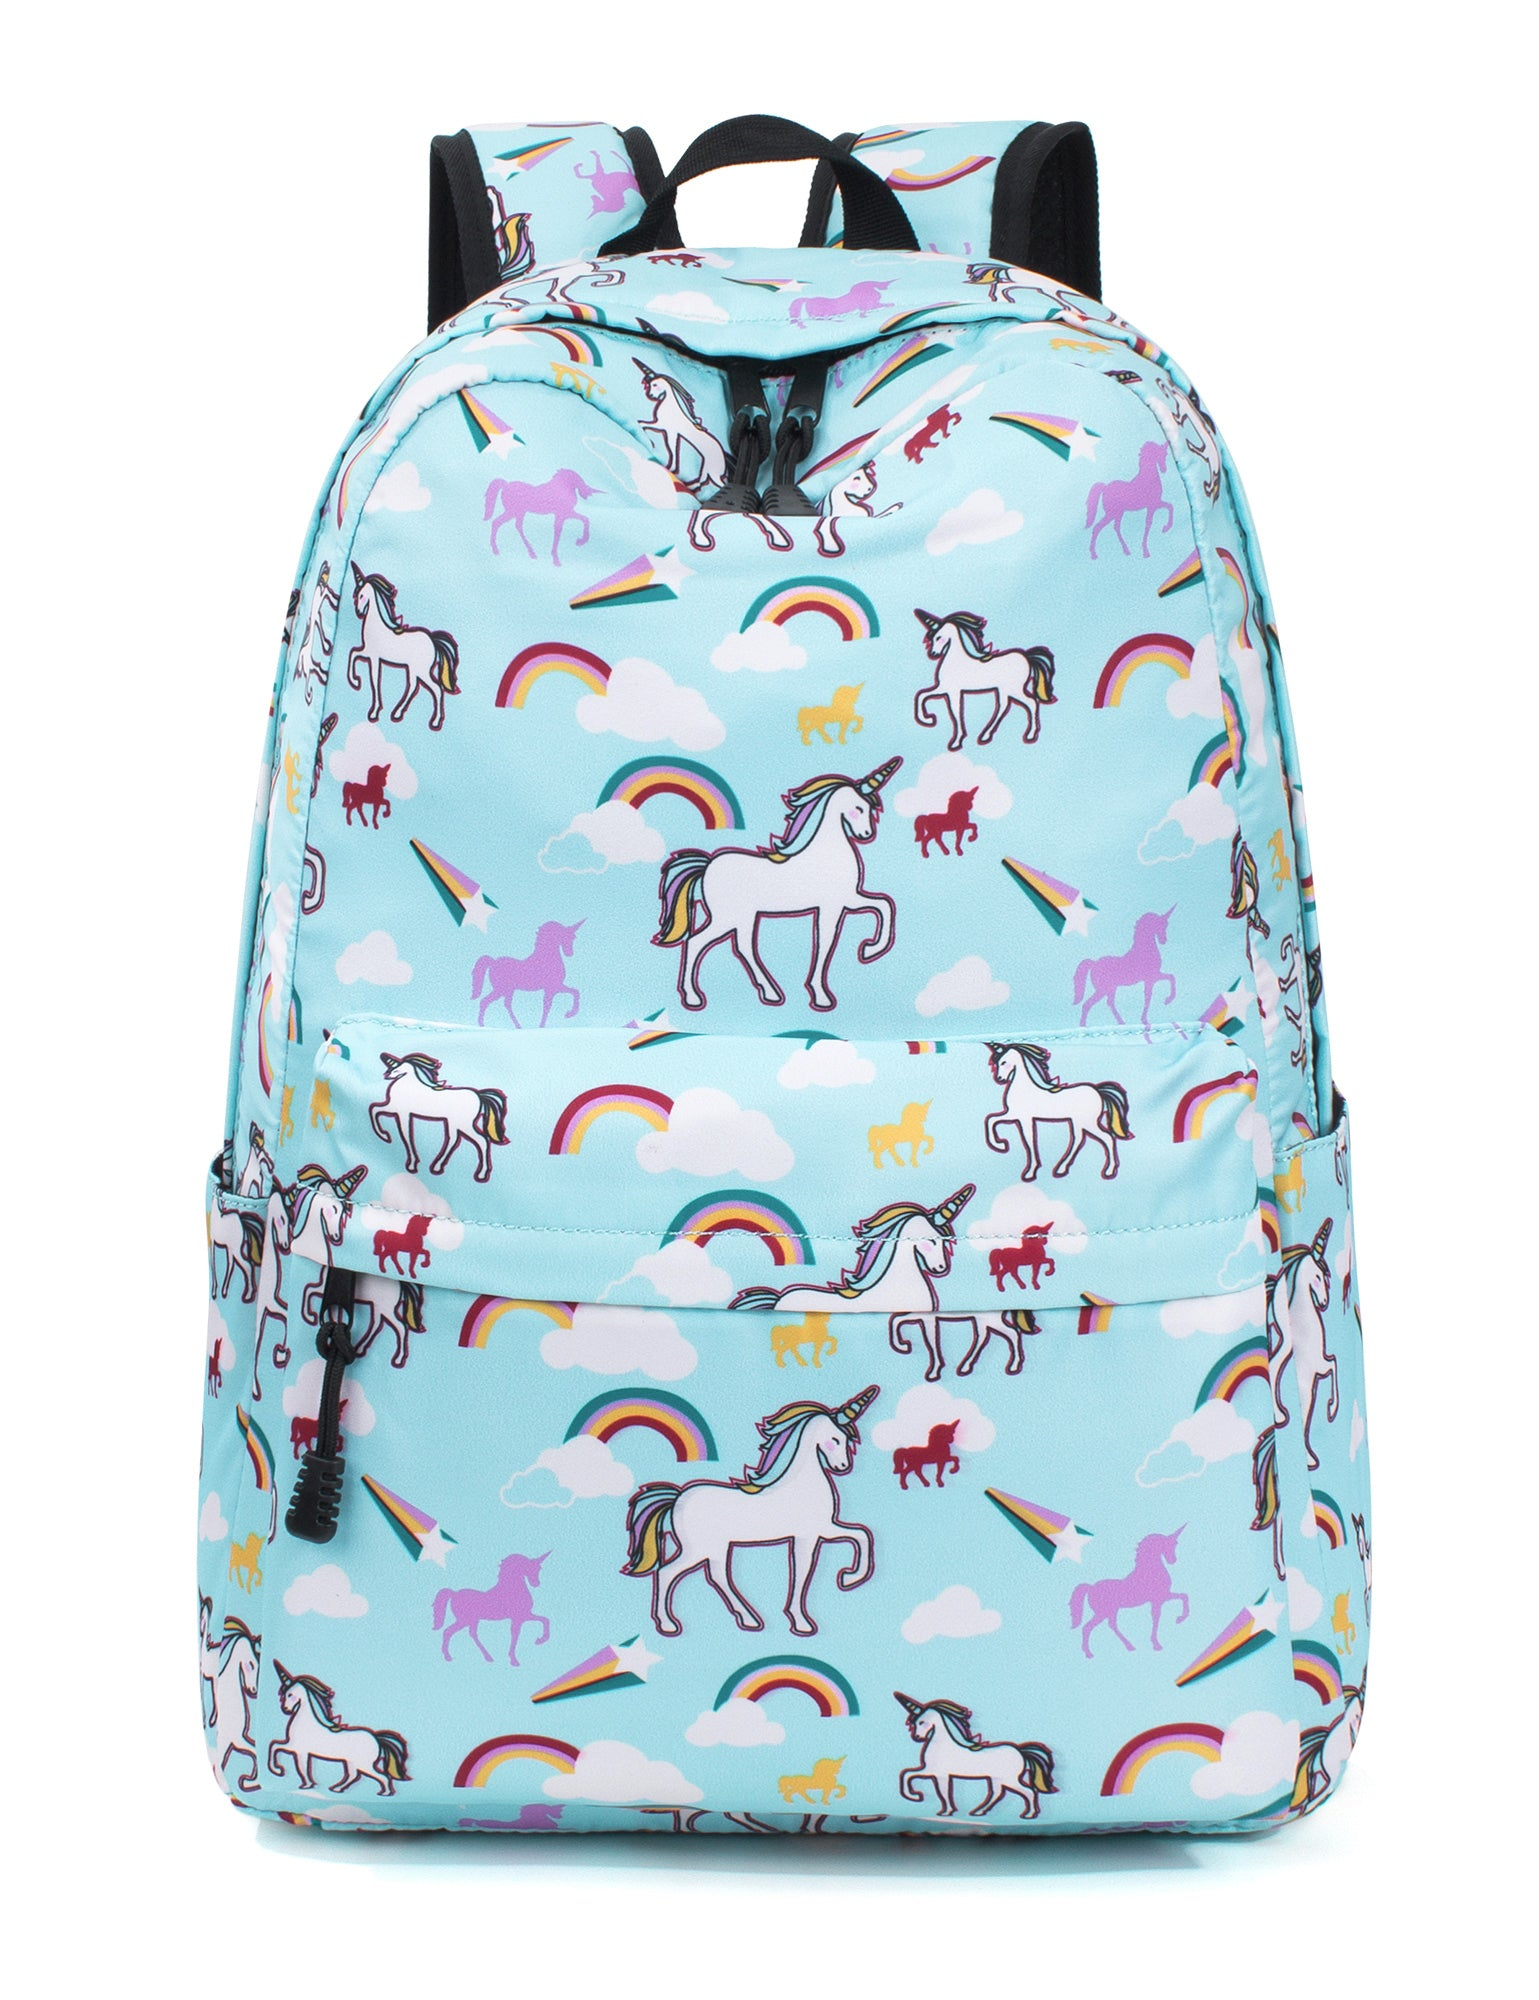 983af277316efb Load image into Gallery viewer, TOPERIN White Unicorn with Rainbow Backpack  for Girls Laptop Backpack ...